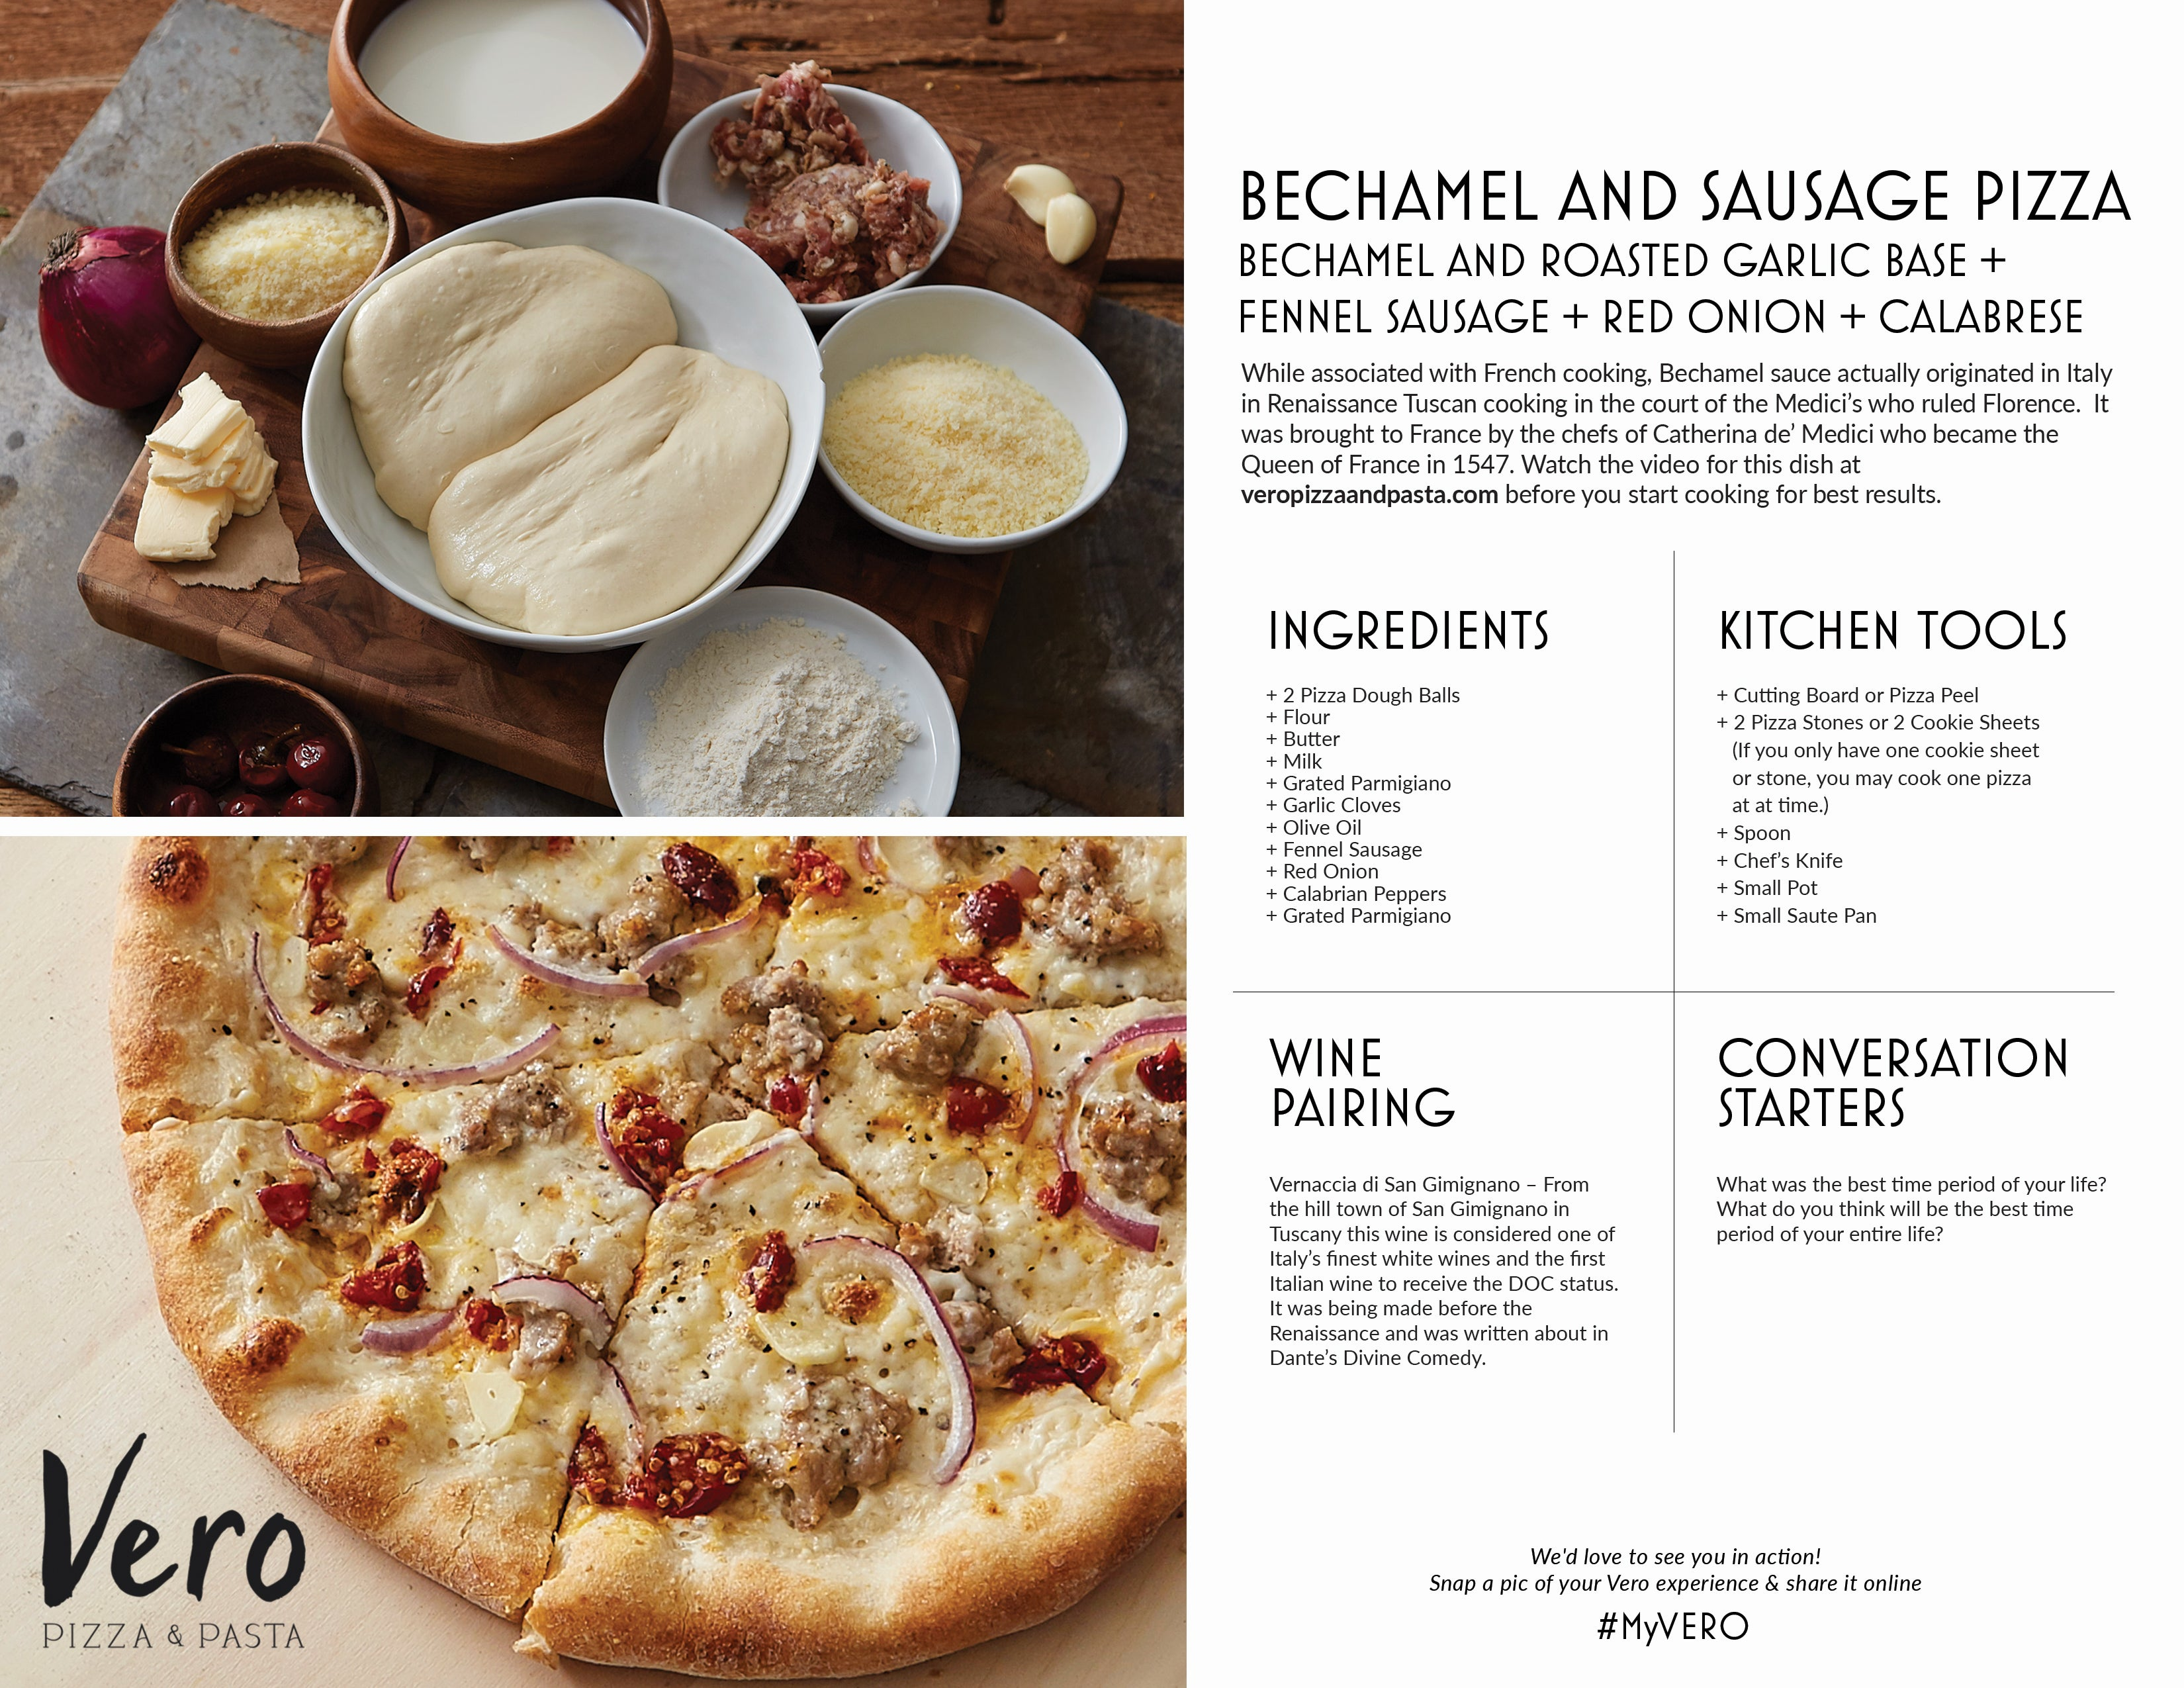 Bechamel and Sausage Pizza